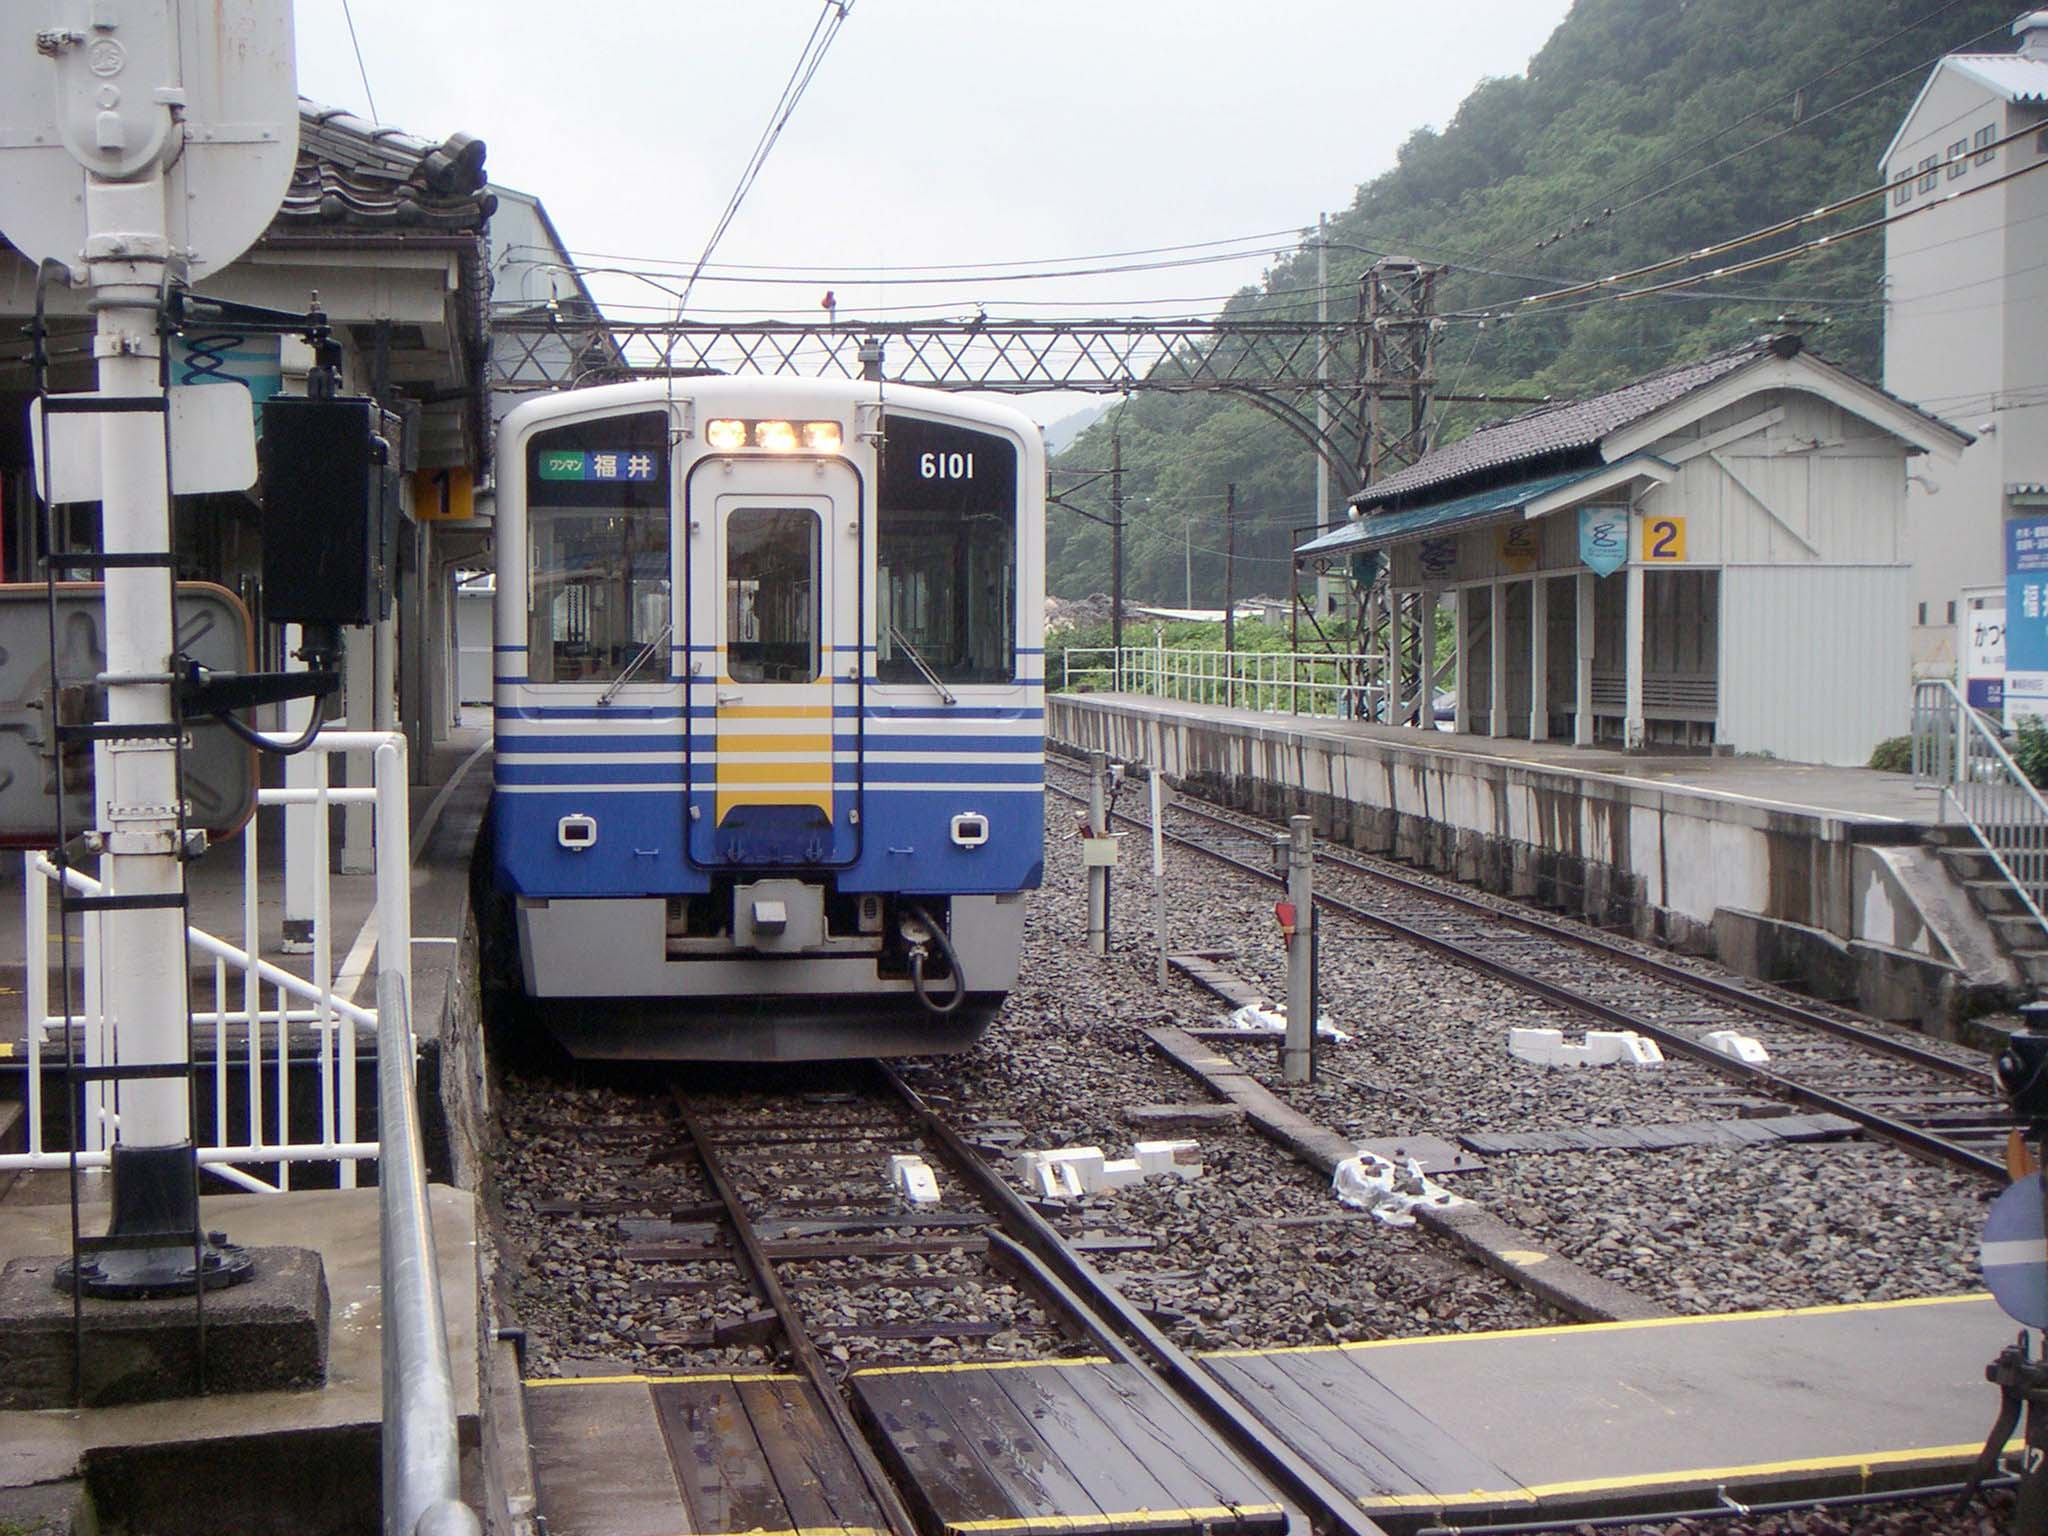 https://upload.wikimedia.org/wikipedia/commons/d/d6/Katsuyama_Station_platform_200507.jpg